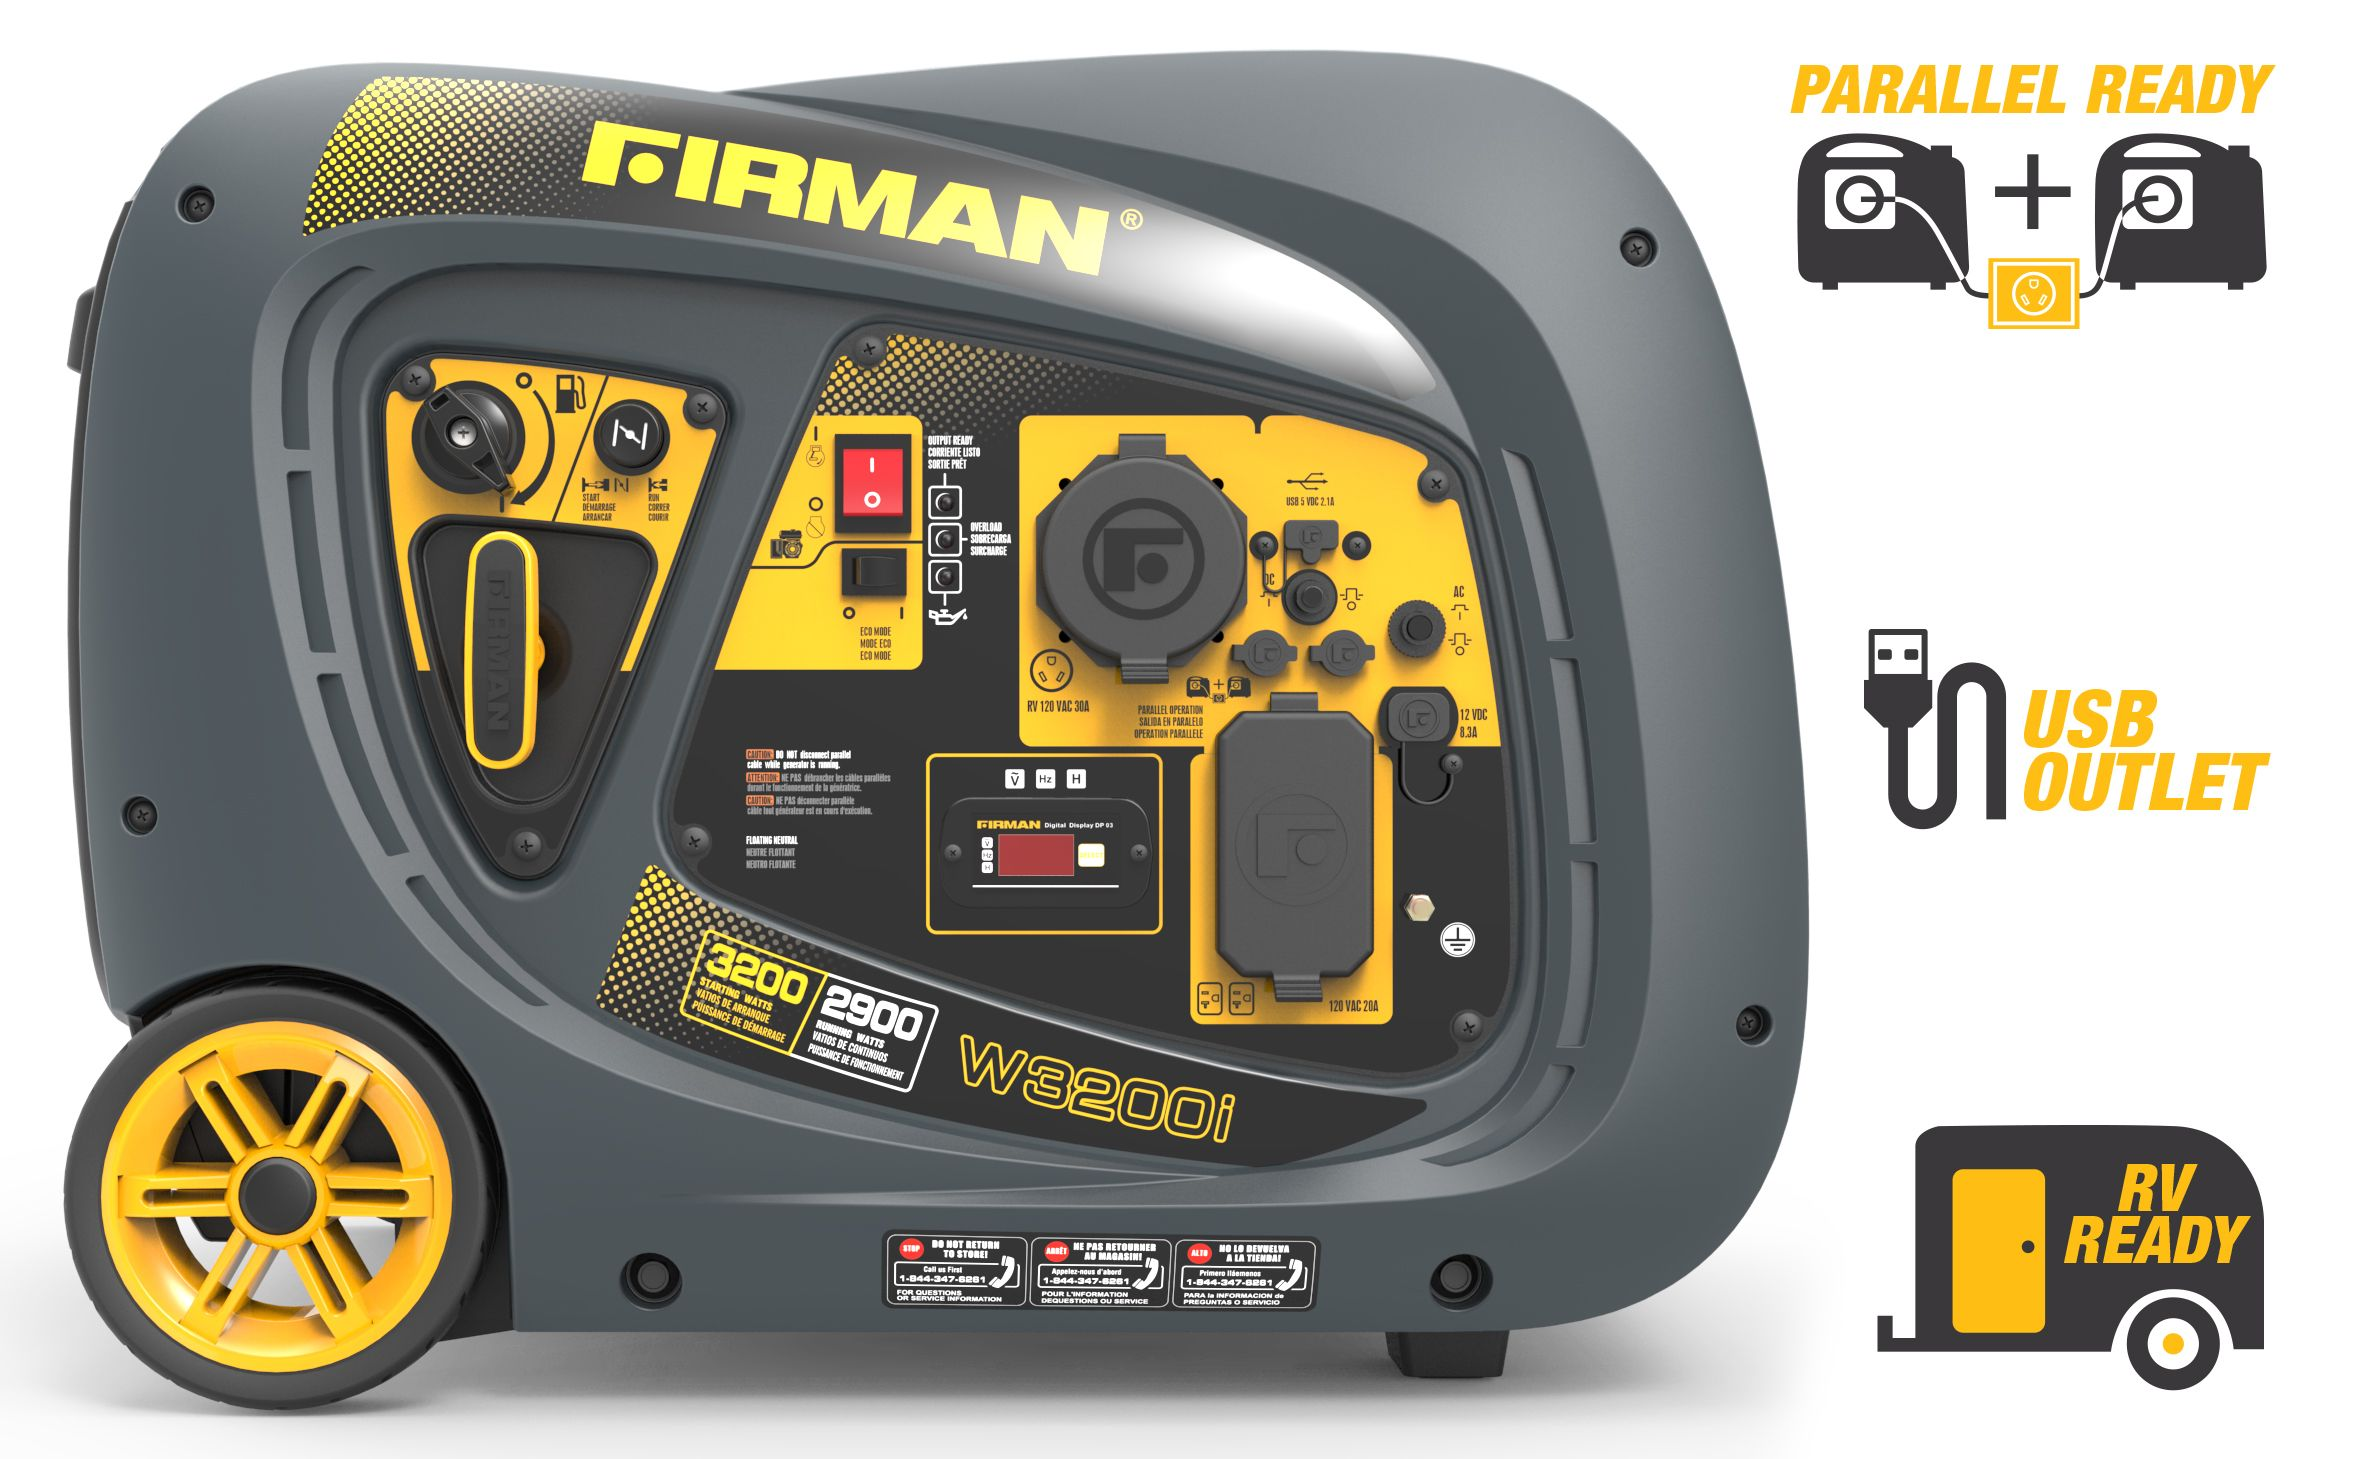 Firman 2900W Running / 3200W Peak Gasoline Powered Inverter Generator